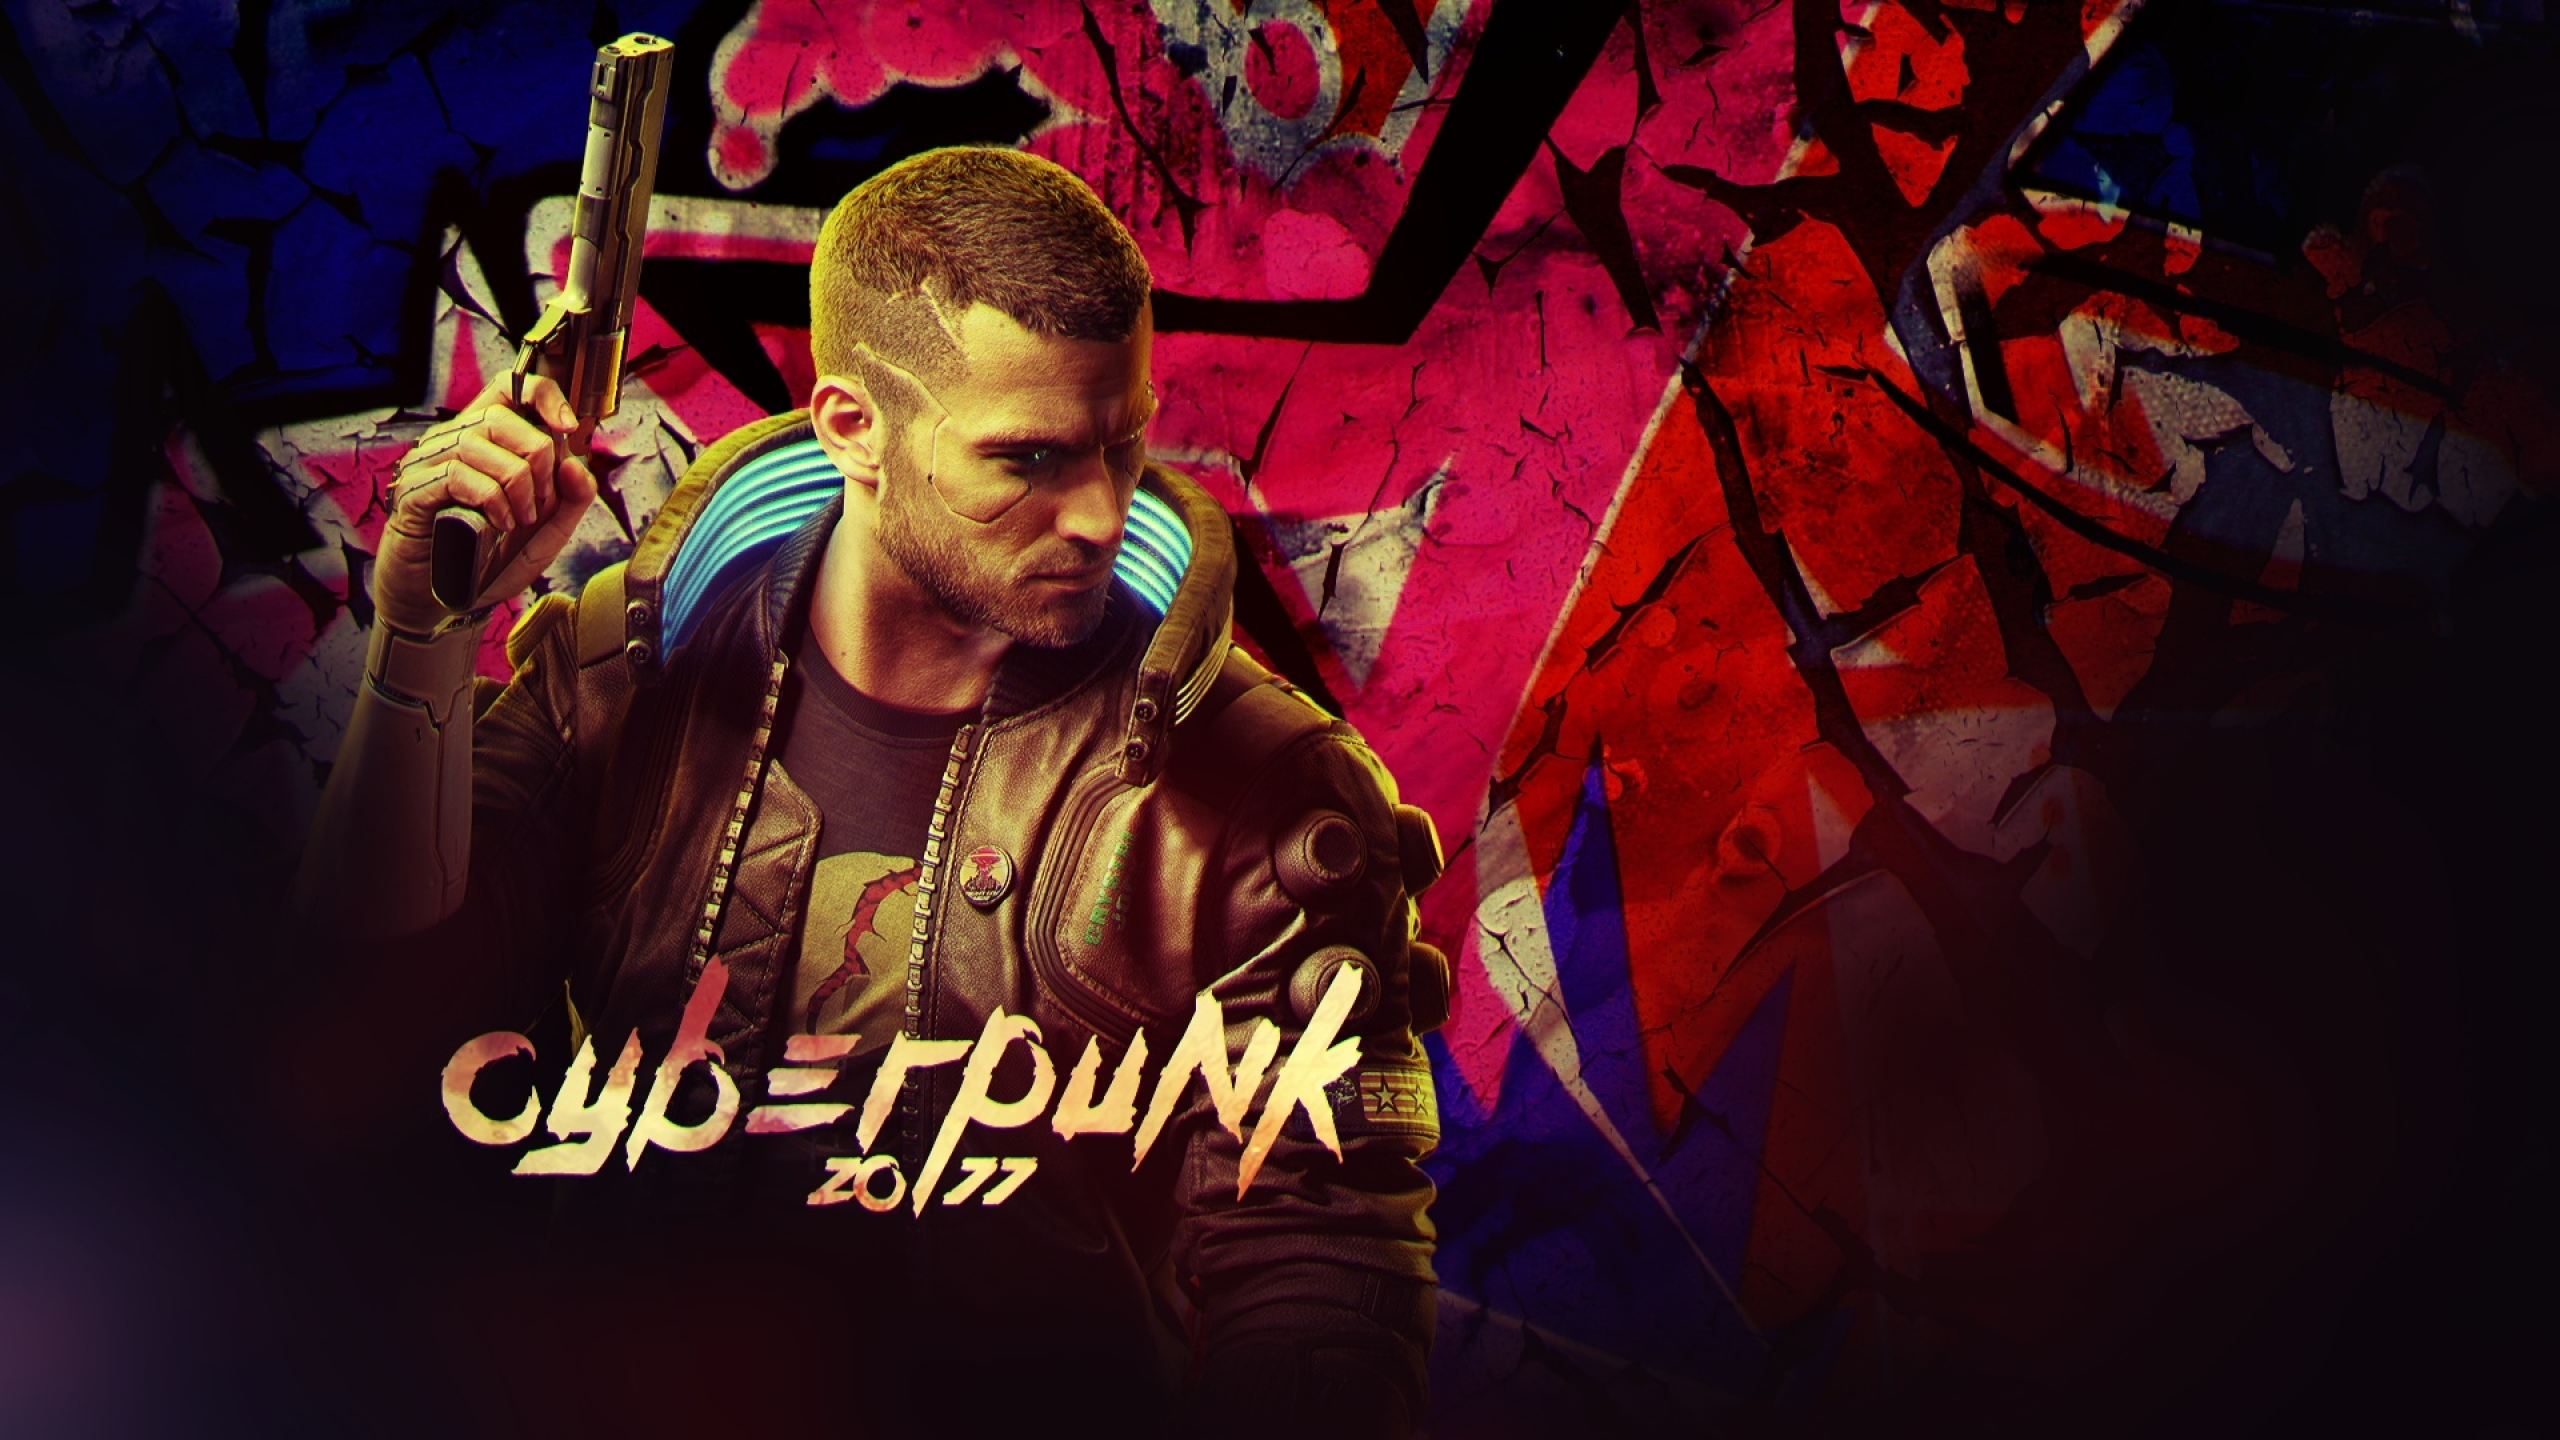 2560x1440 Cyberpunk 2077 Game 1440p Resolution Wallpaper Hd Games 4k Wallpapers Images Photos And Background